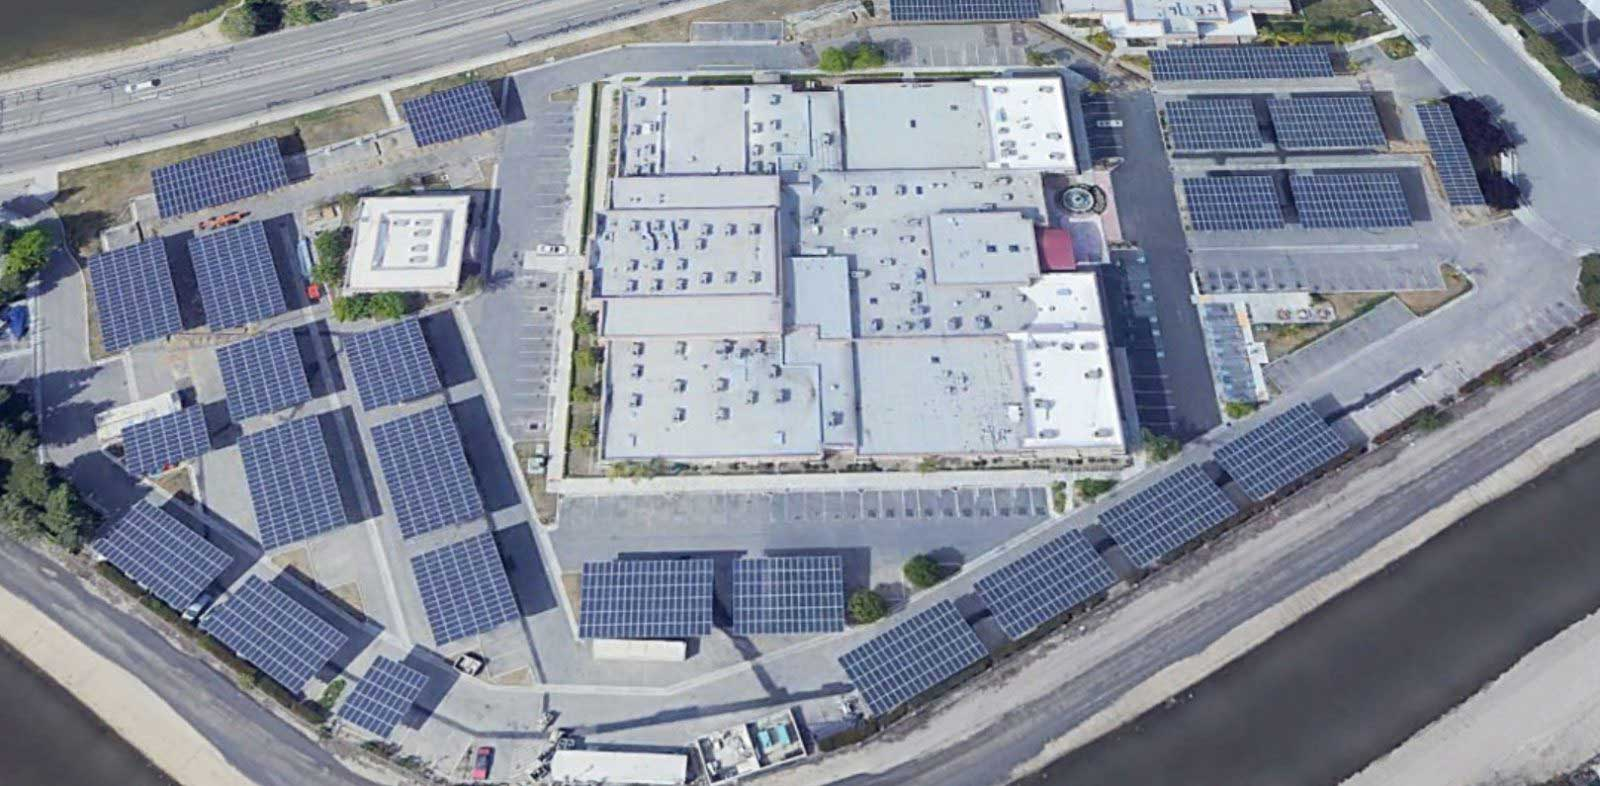 Vgg systems | Solar, Microgrid engineering in California & san Francisco.